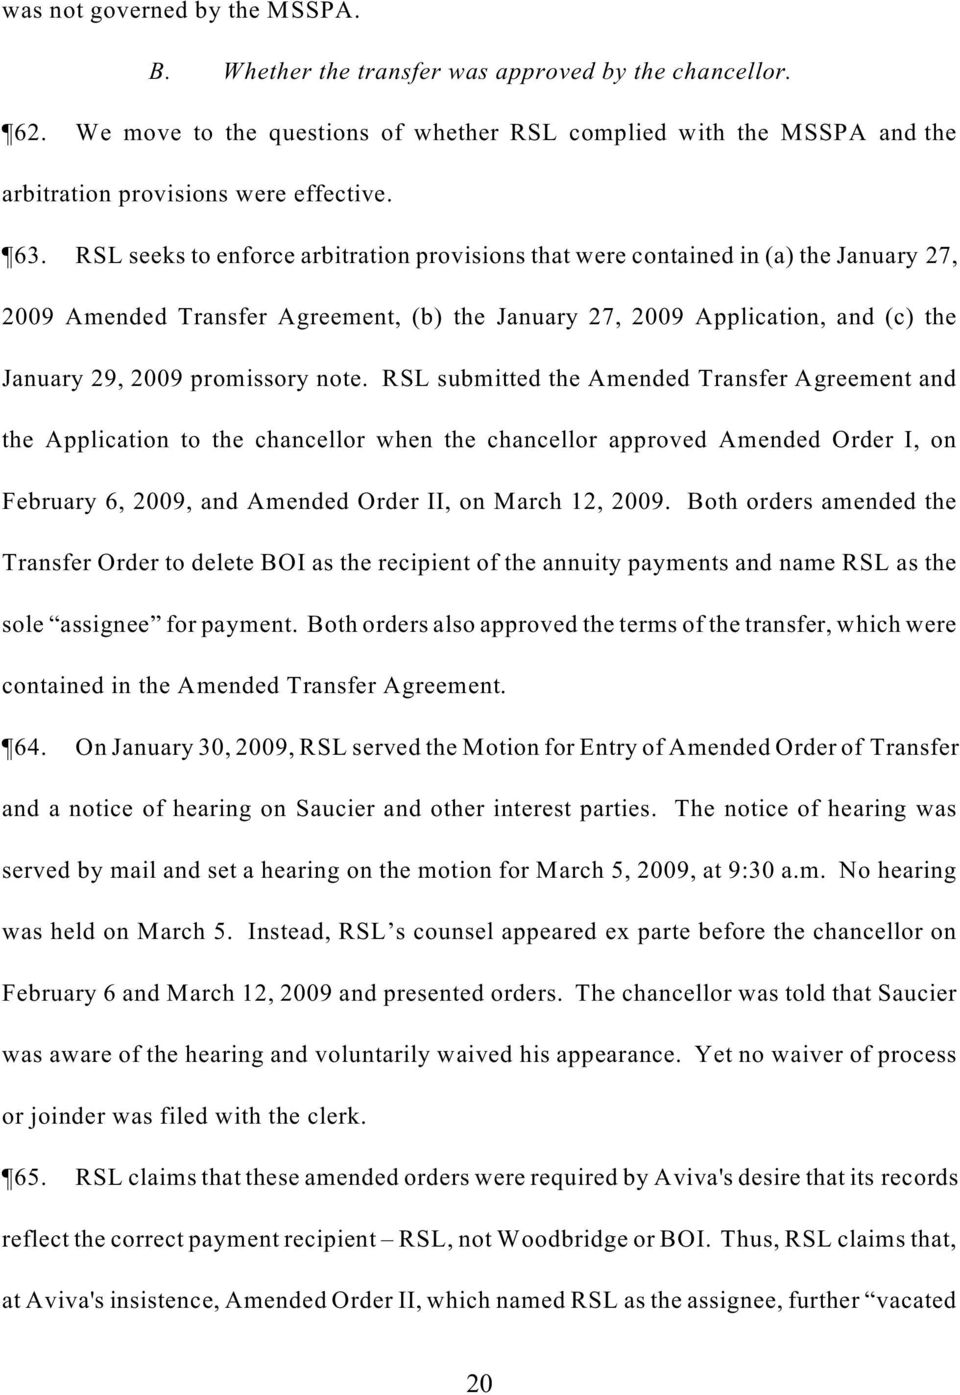 RSL seeks to enforce arbitration provisions that were contained in (a) the January 27, 2009 Amended Transfer Agreement, (b) the January 27, 2009 Application, and (c) the January 29, 2009 promissory